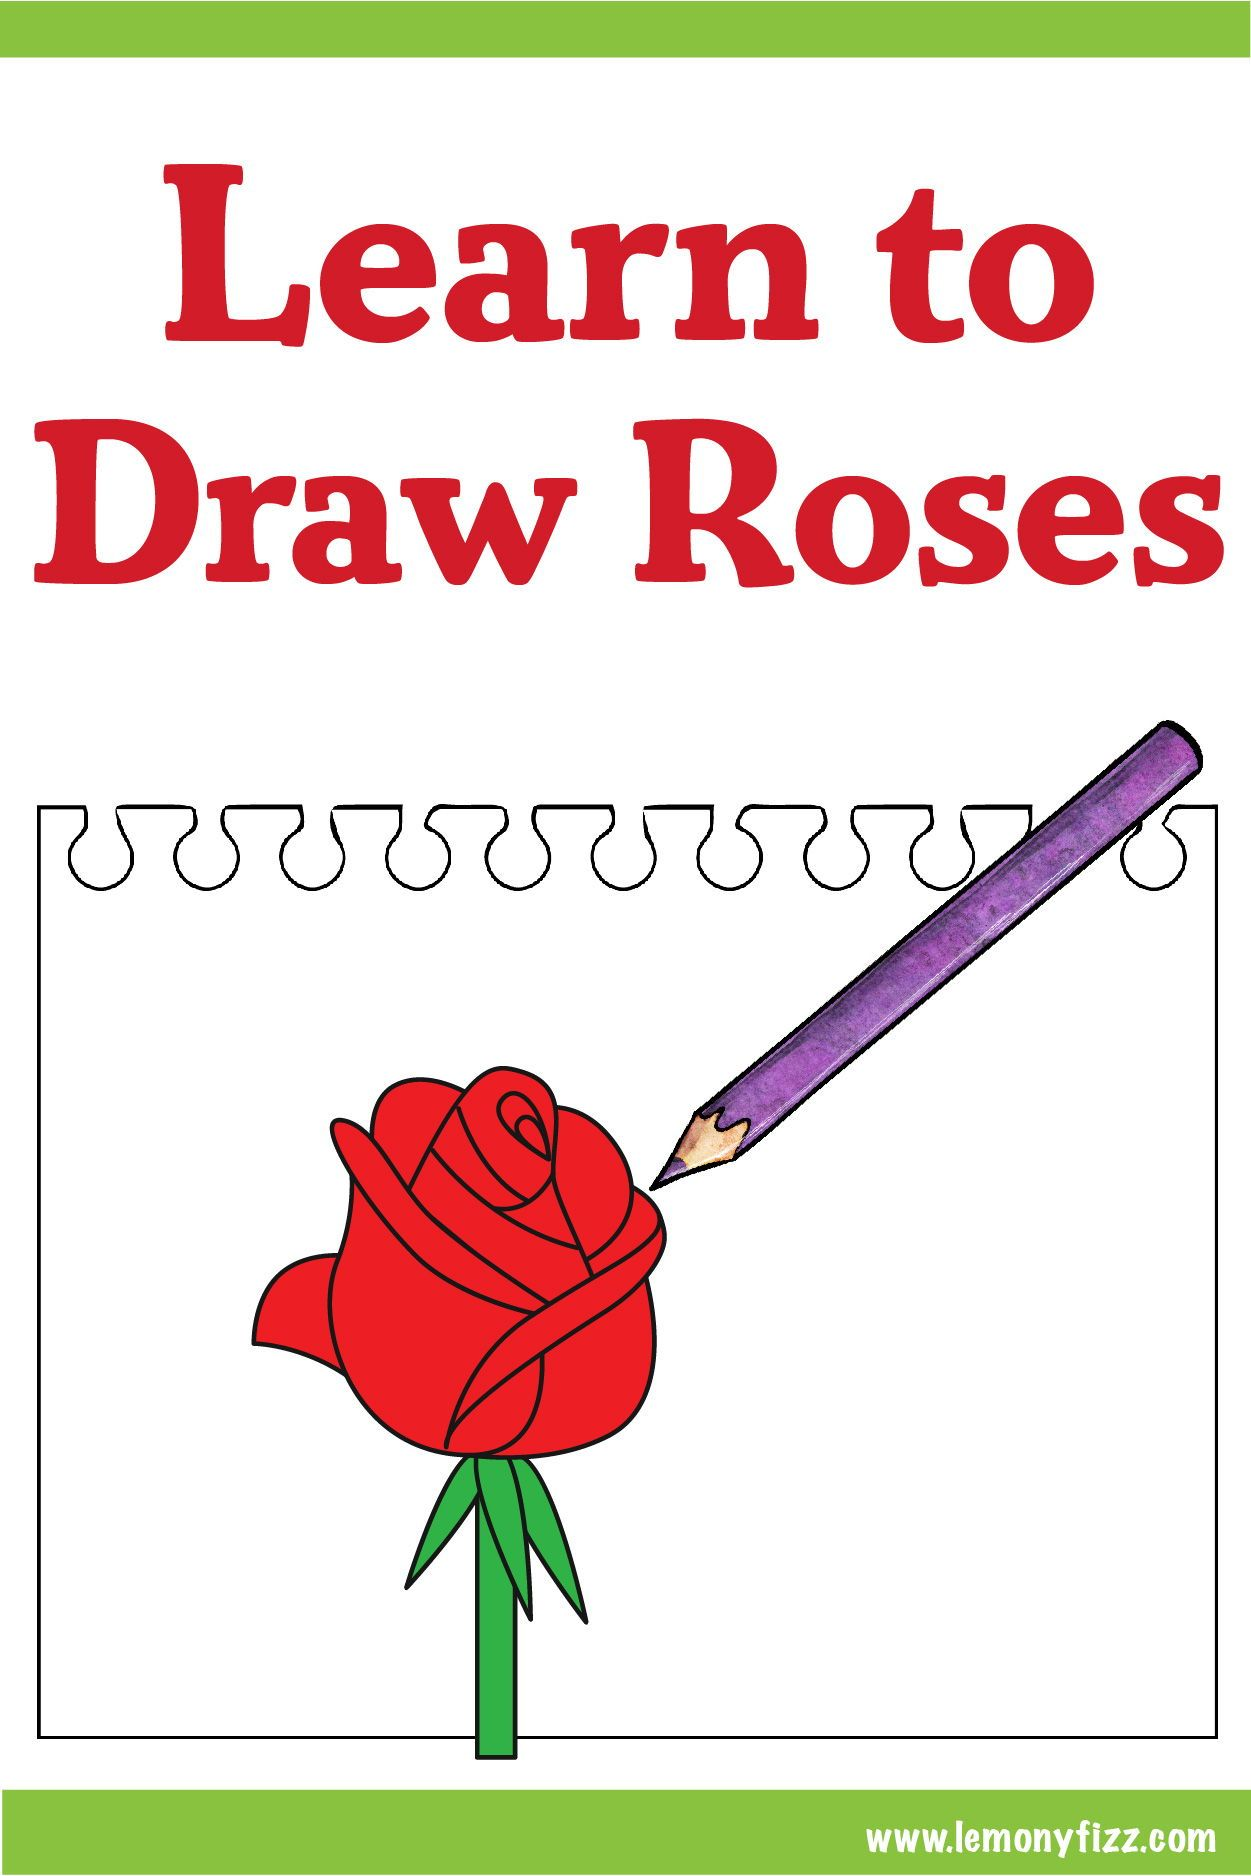 Easy How To Draw A Rose Step By Step Tutorial Free Kids Coloring Pages Flower Step By Step Easy Flower Drawings